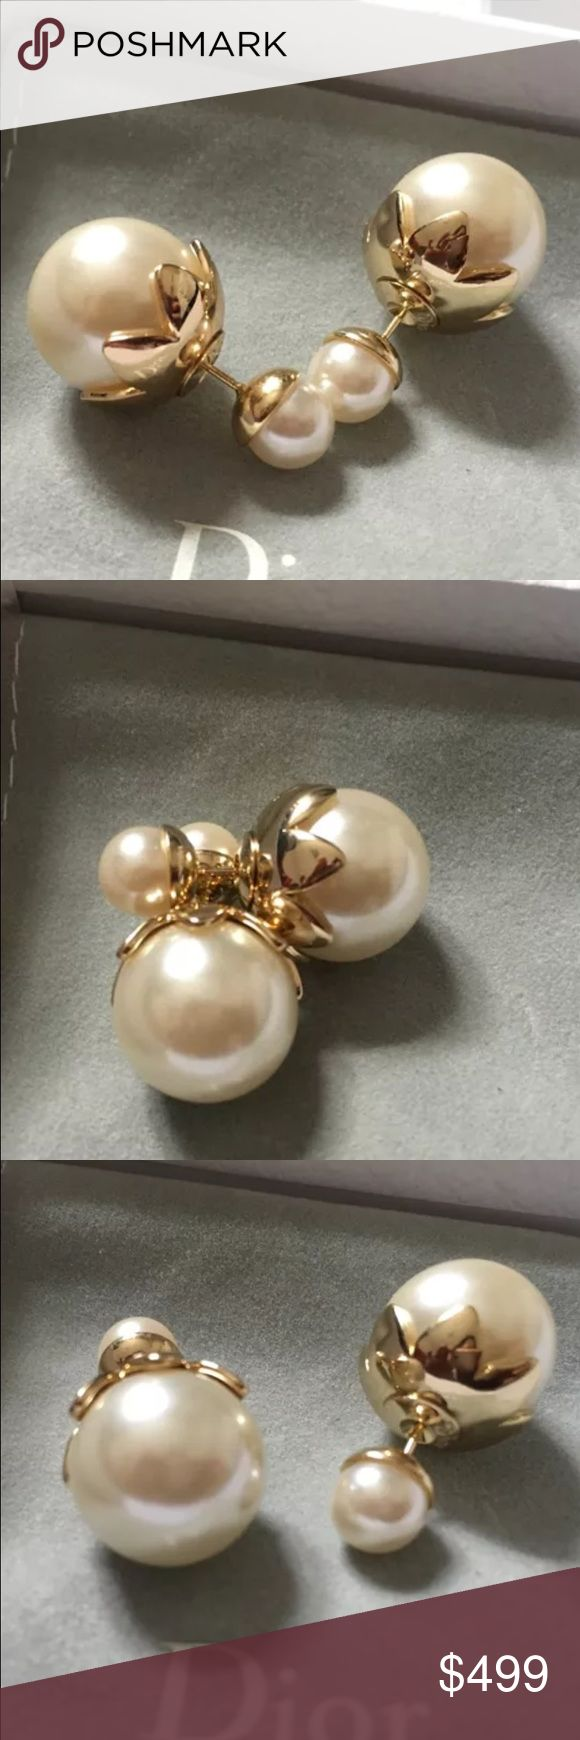 Auth Christian Dior Tulip Tribal Pearl Earrings Pristine Like NEW! Comes with box only. GUARANTEED 100% AUTHENTIC. PHOTOS ARE TAKEN OF THE EXACT SAME ITEM YOU WILL RECEIVE! WHAT YOU SEE IS WHAT YOU GET*** PLEASE VISIT OUR WEBSITE AT WWW.AUTHENTICLUXURIESTW.COM or email me at authenticluxuries11@gmail.com for more detailed photos =). Dior Jewelry Earrings